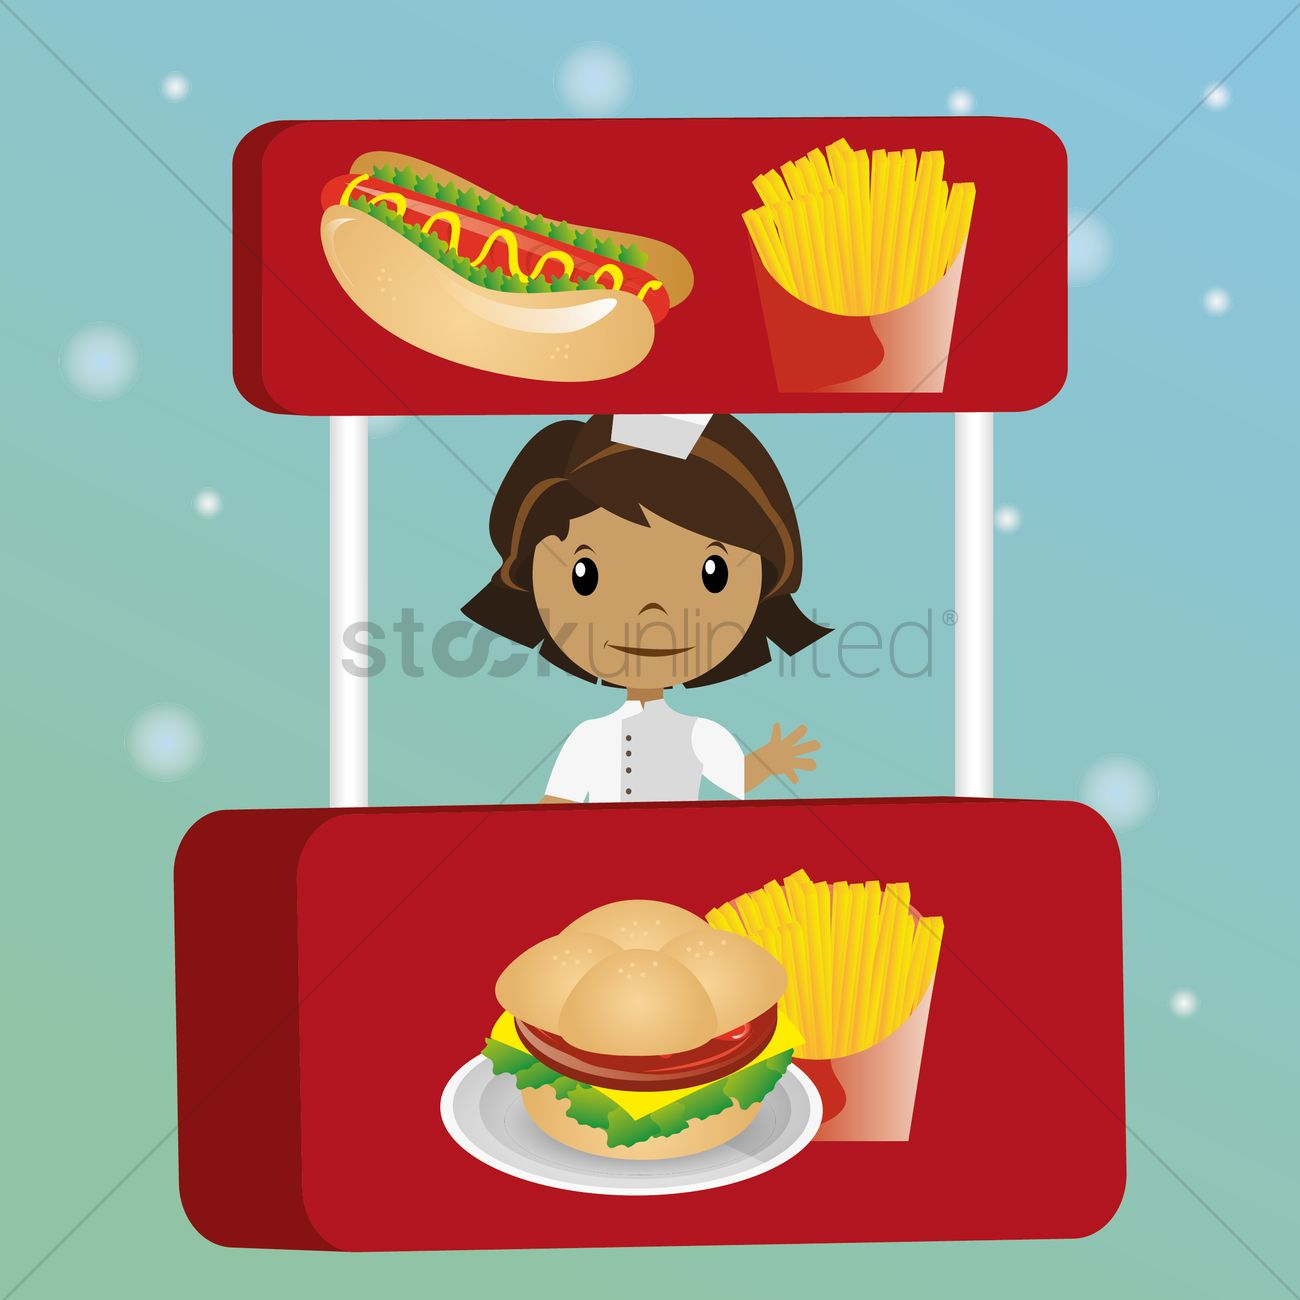 Fast food stall Vector Image.